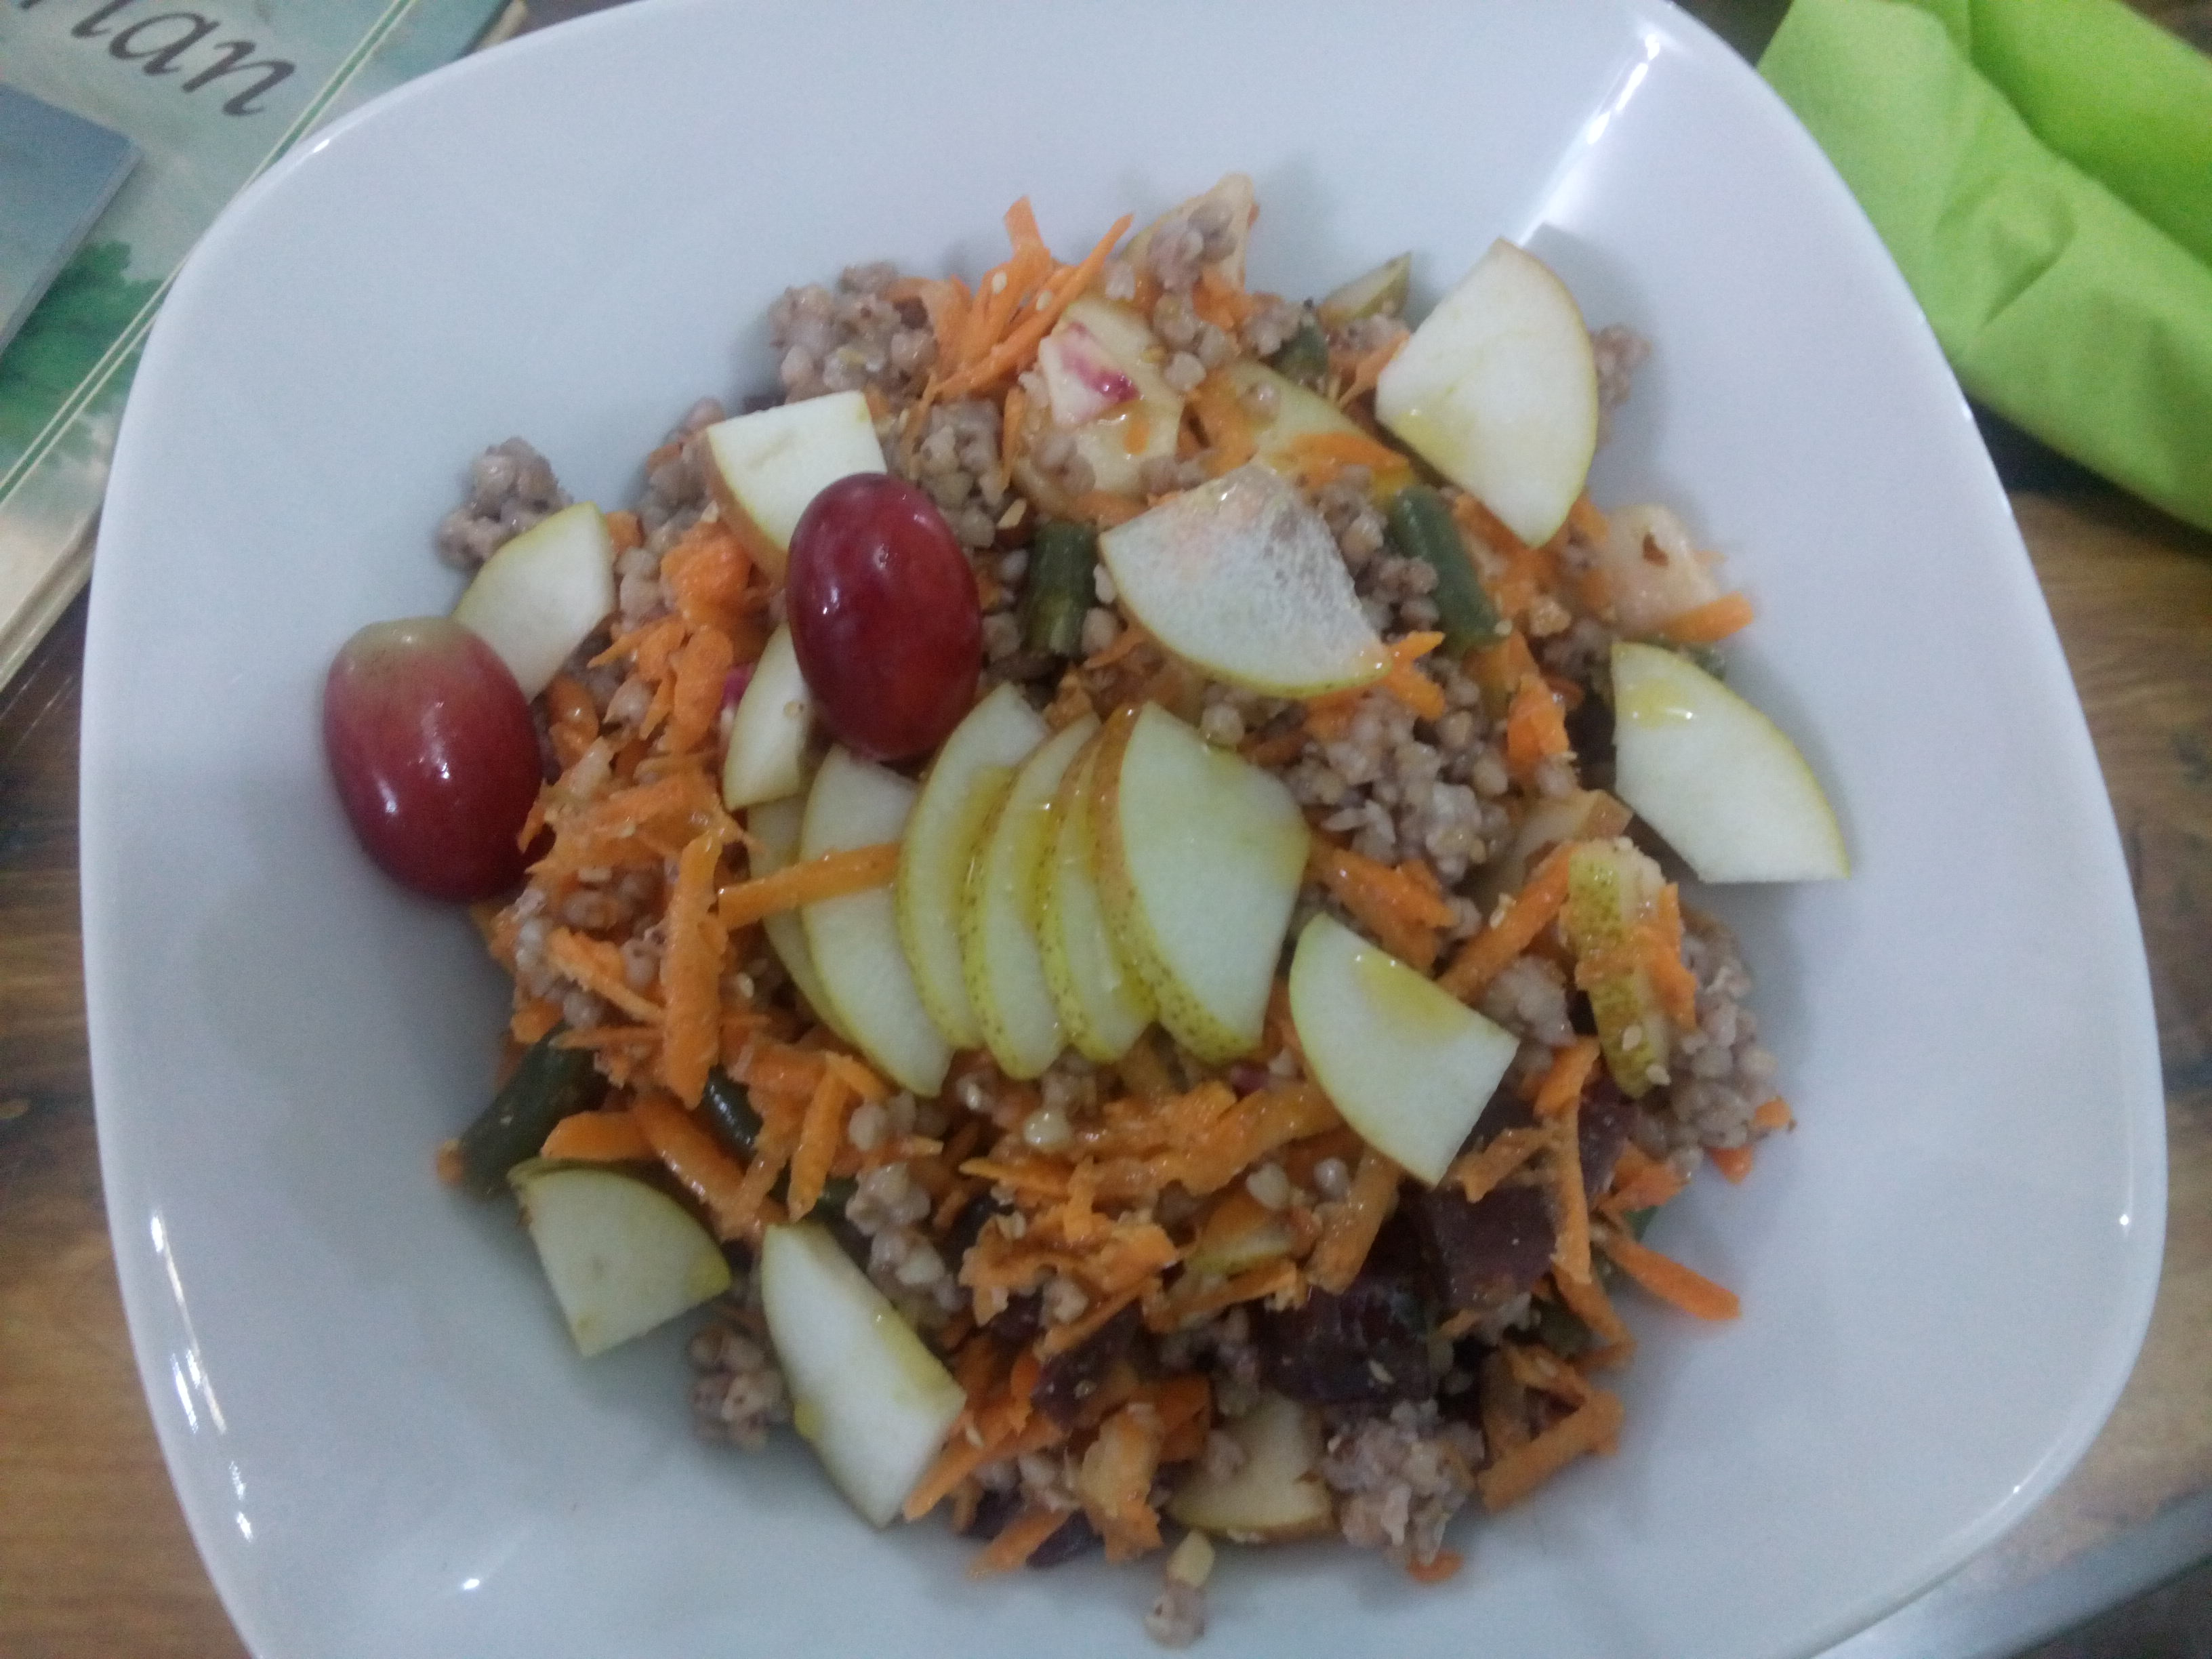 A white dish with grains, sliced pear, tomatoes and shredded carrots